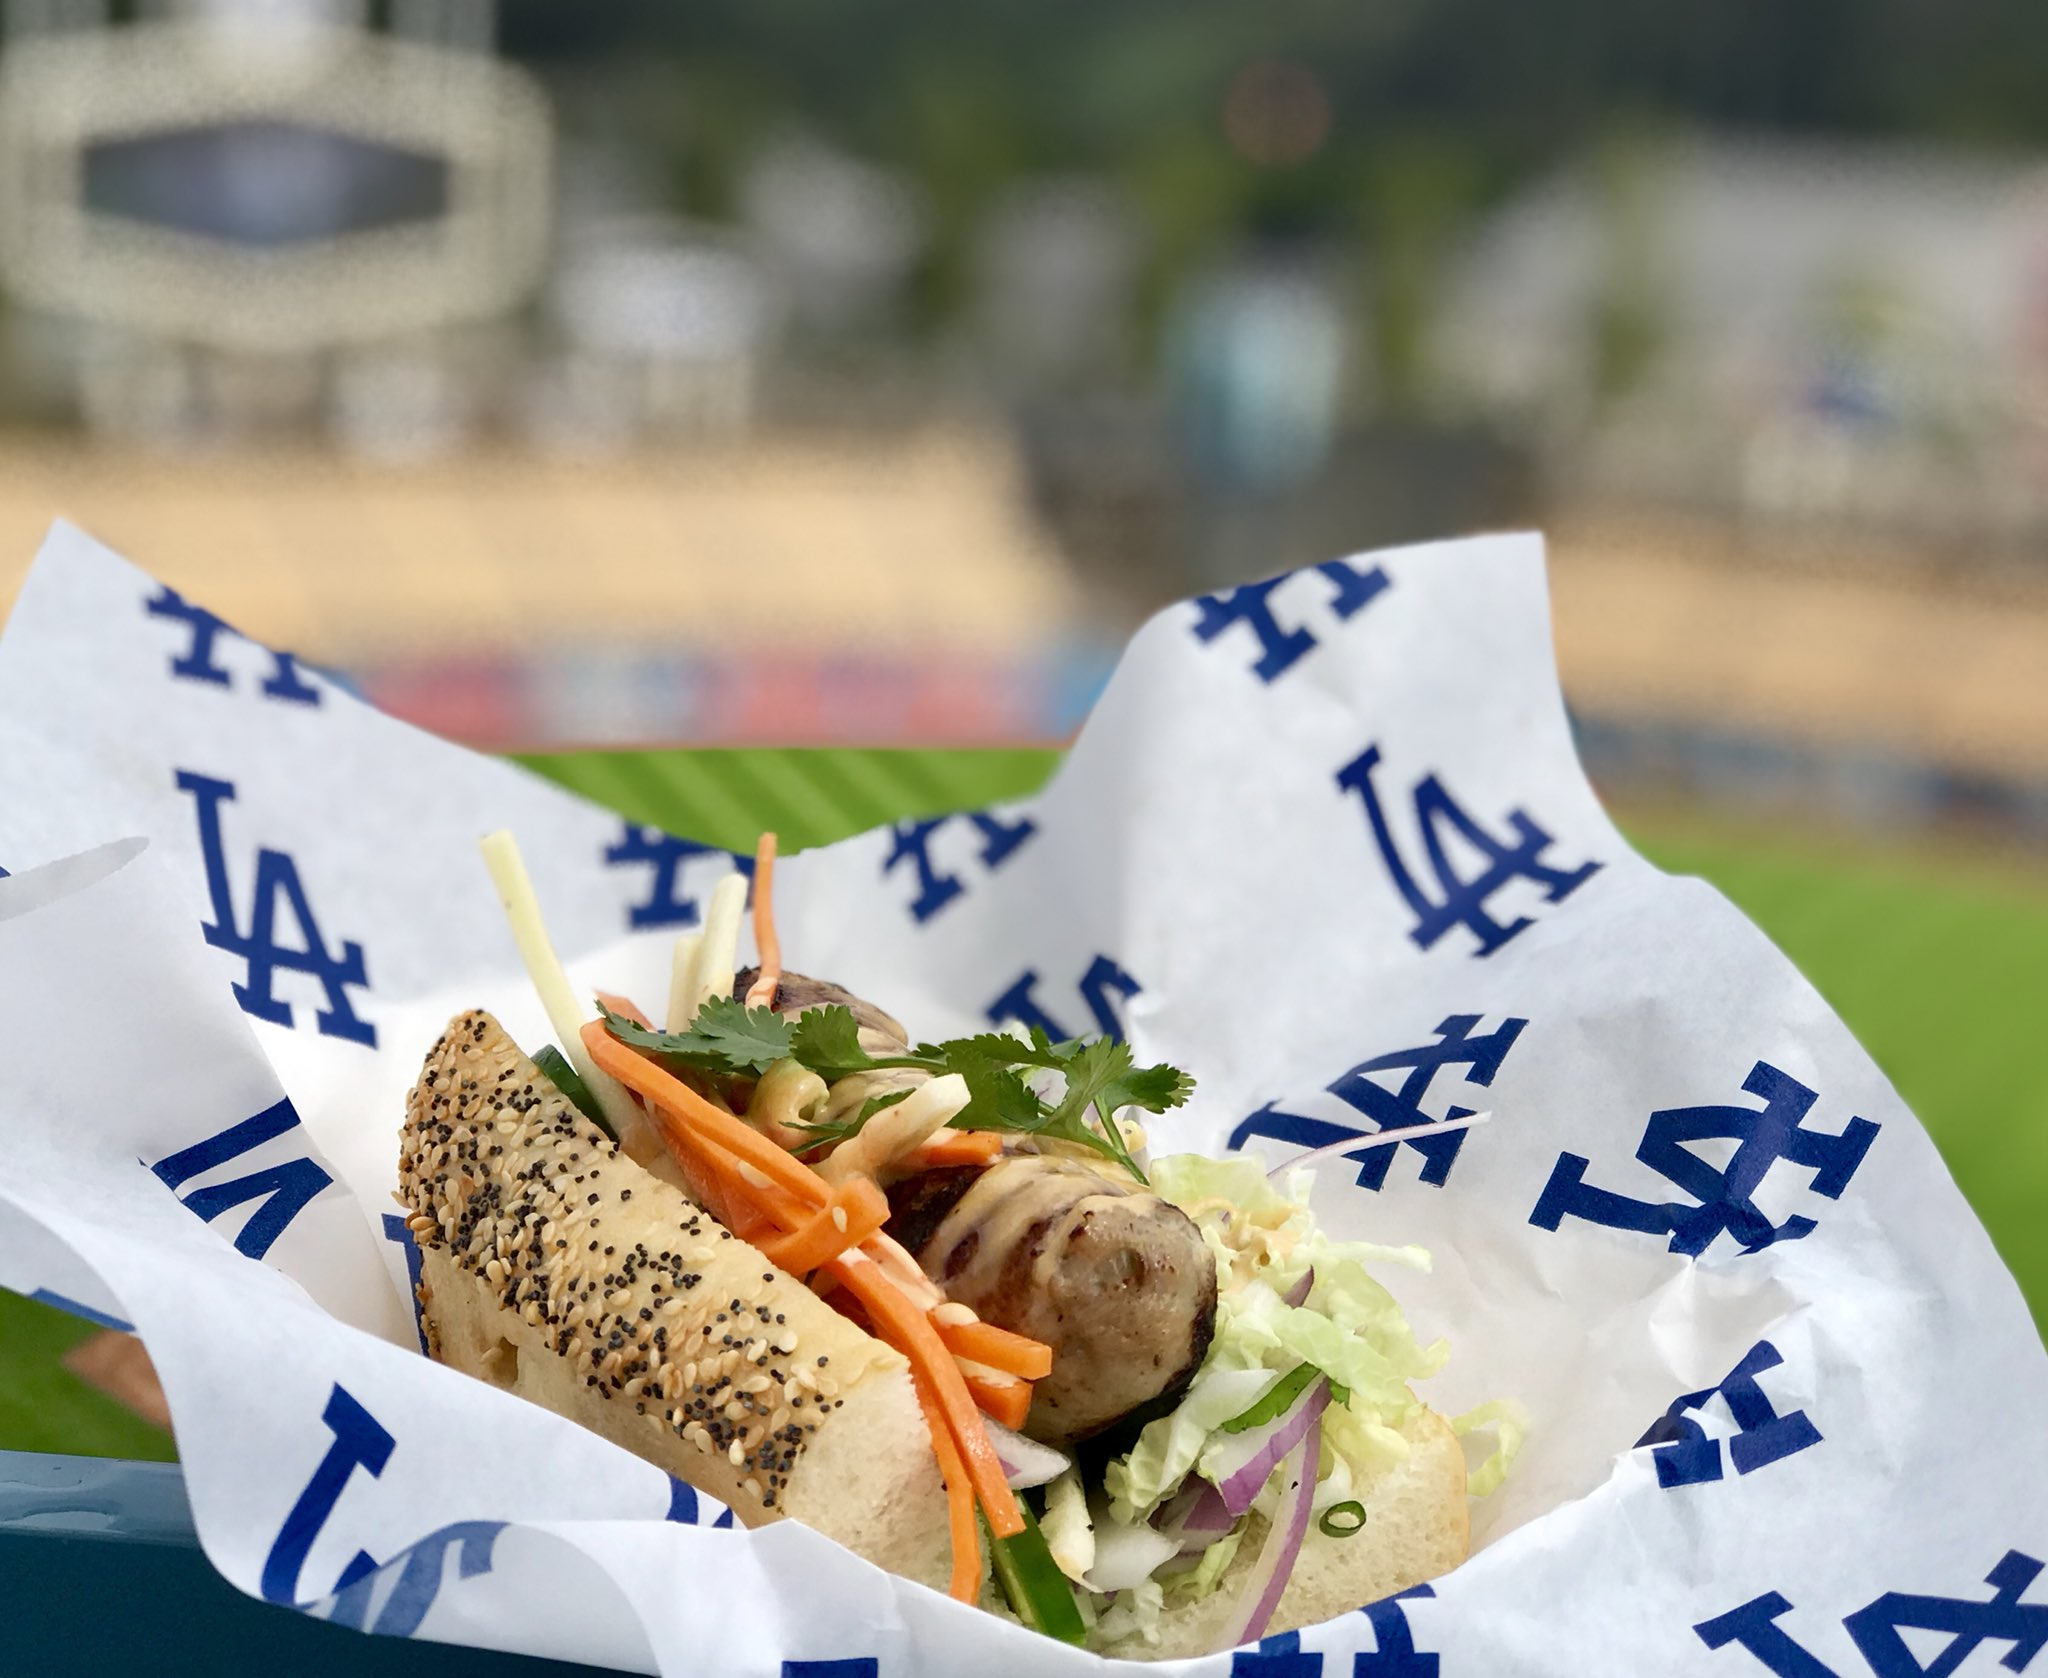 "<div class=""meta image-caption""><div class=""origin-logo origin-image none""><span>none</span></div><span class=""caption-text"">A Chicken Sausage Bahn Mi is shown at Dodger Stadium. (Levy)</span></div>"